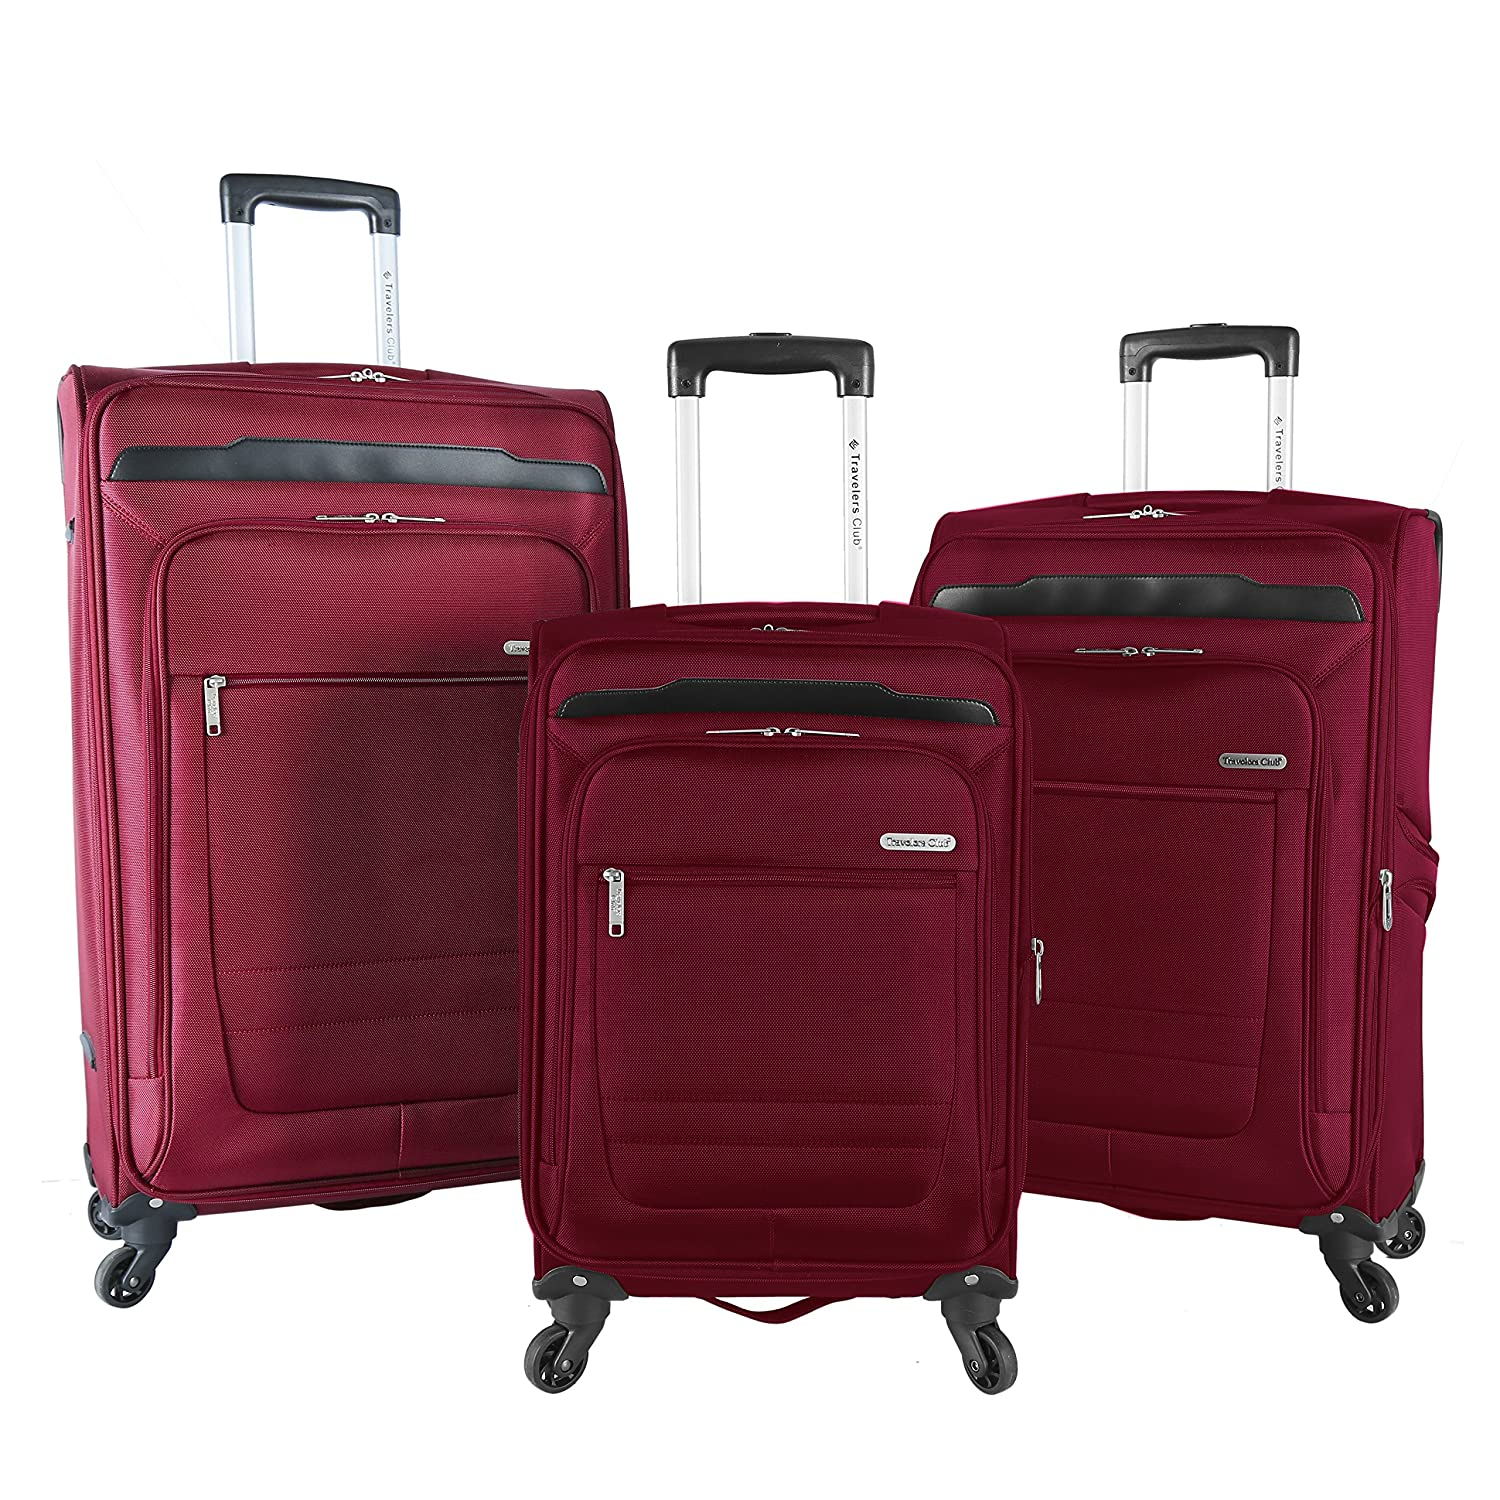 e9d87c6b7 Amazon.com | Travelers Club Luggage 3 Piece Top Durable Expandable Spinner Luggage  Set, Black | Luggage Sets